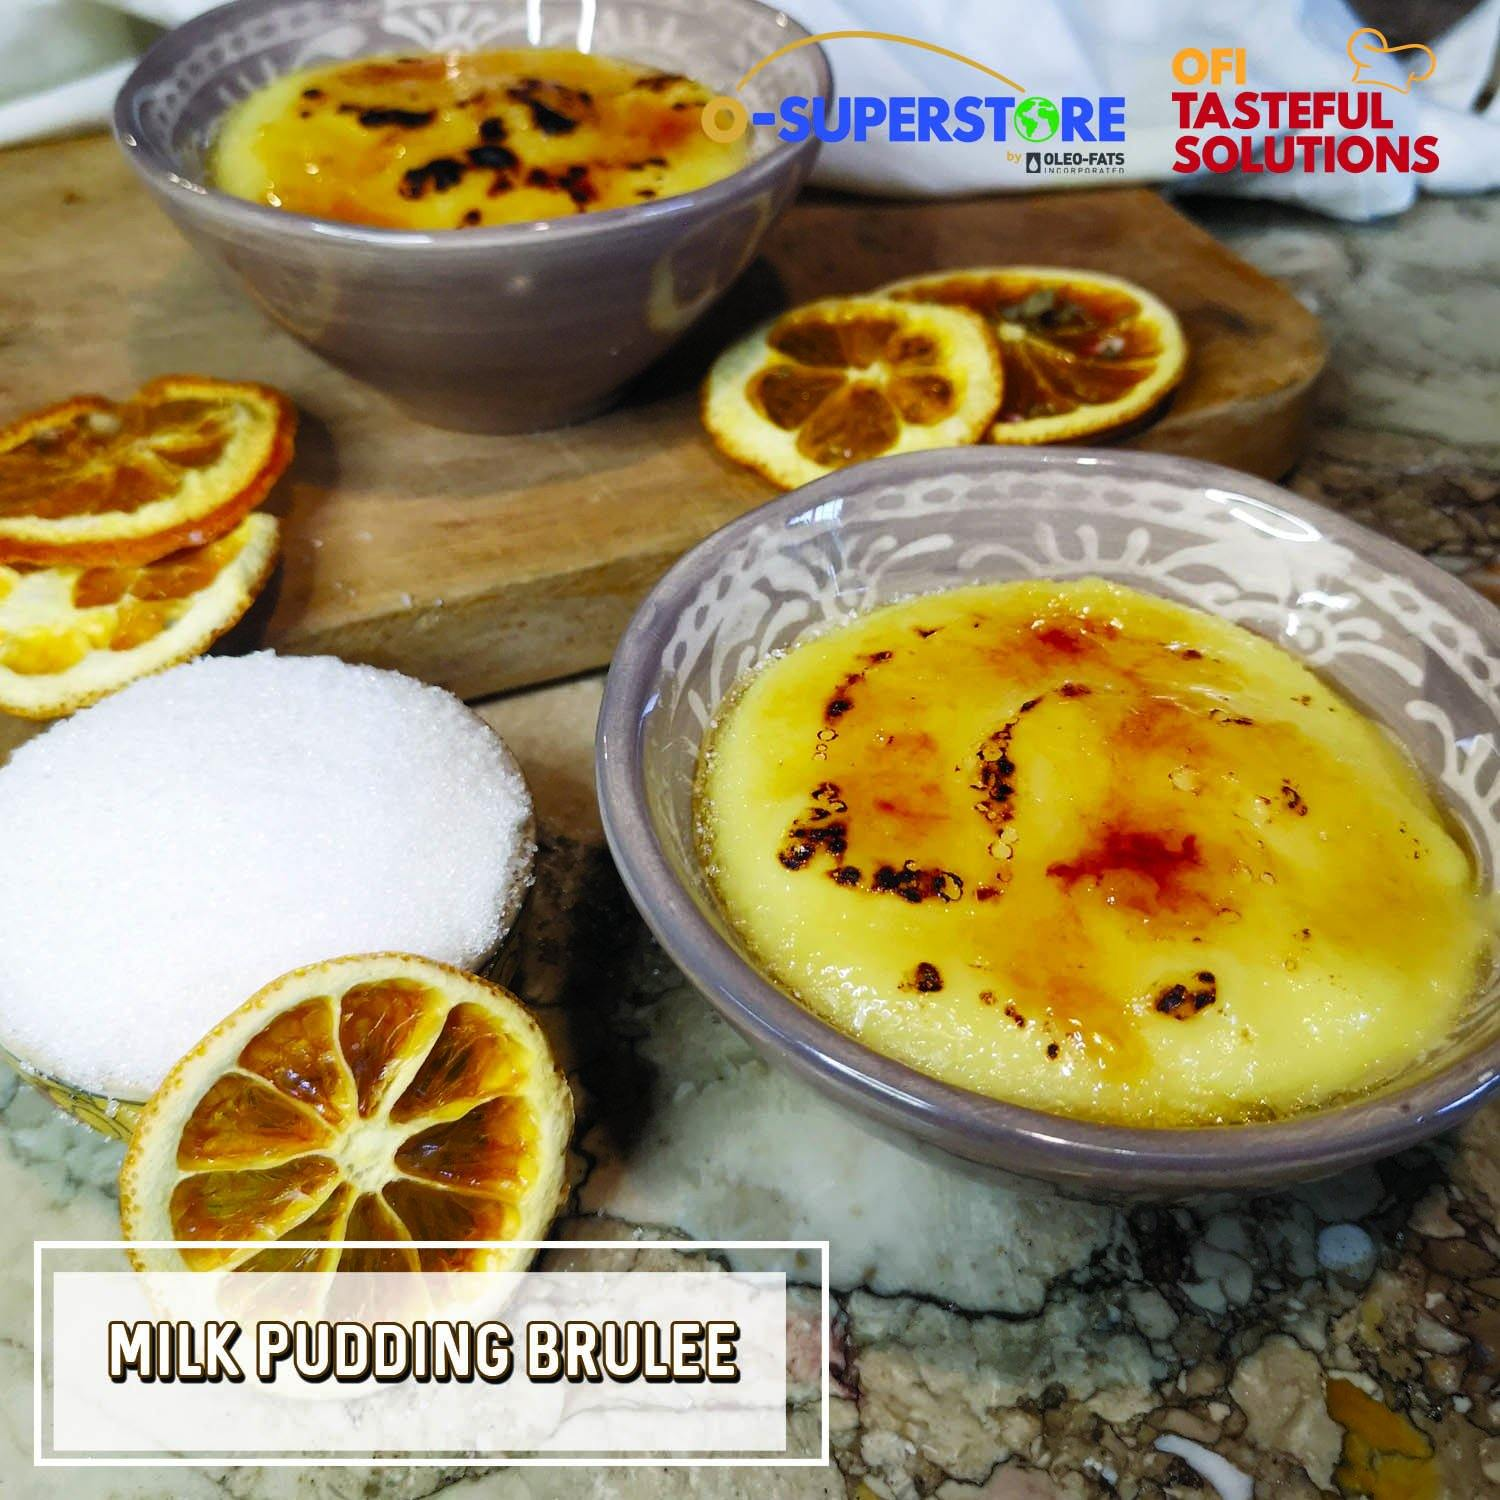 Milk Pudding Brulee - O-SUPERSTORE